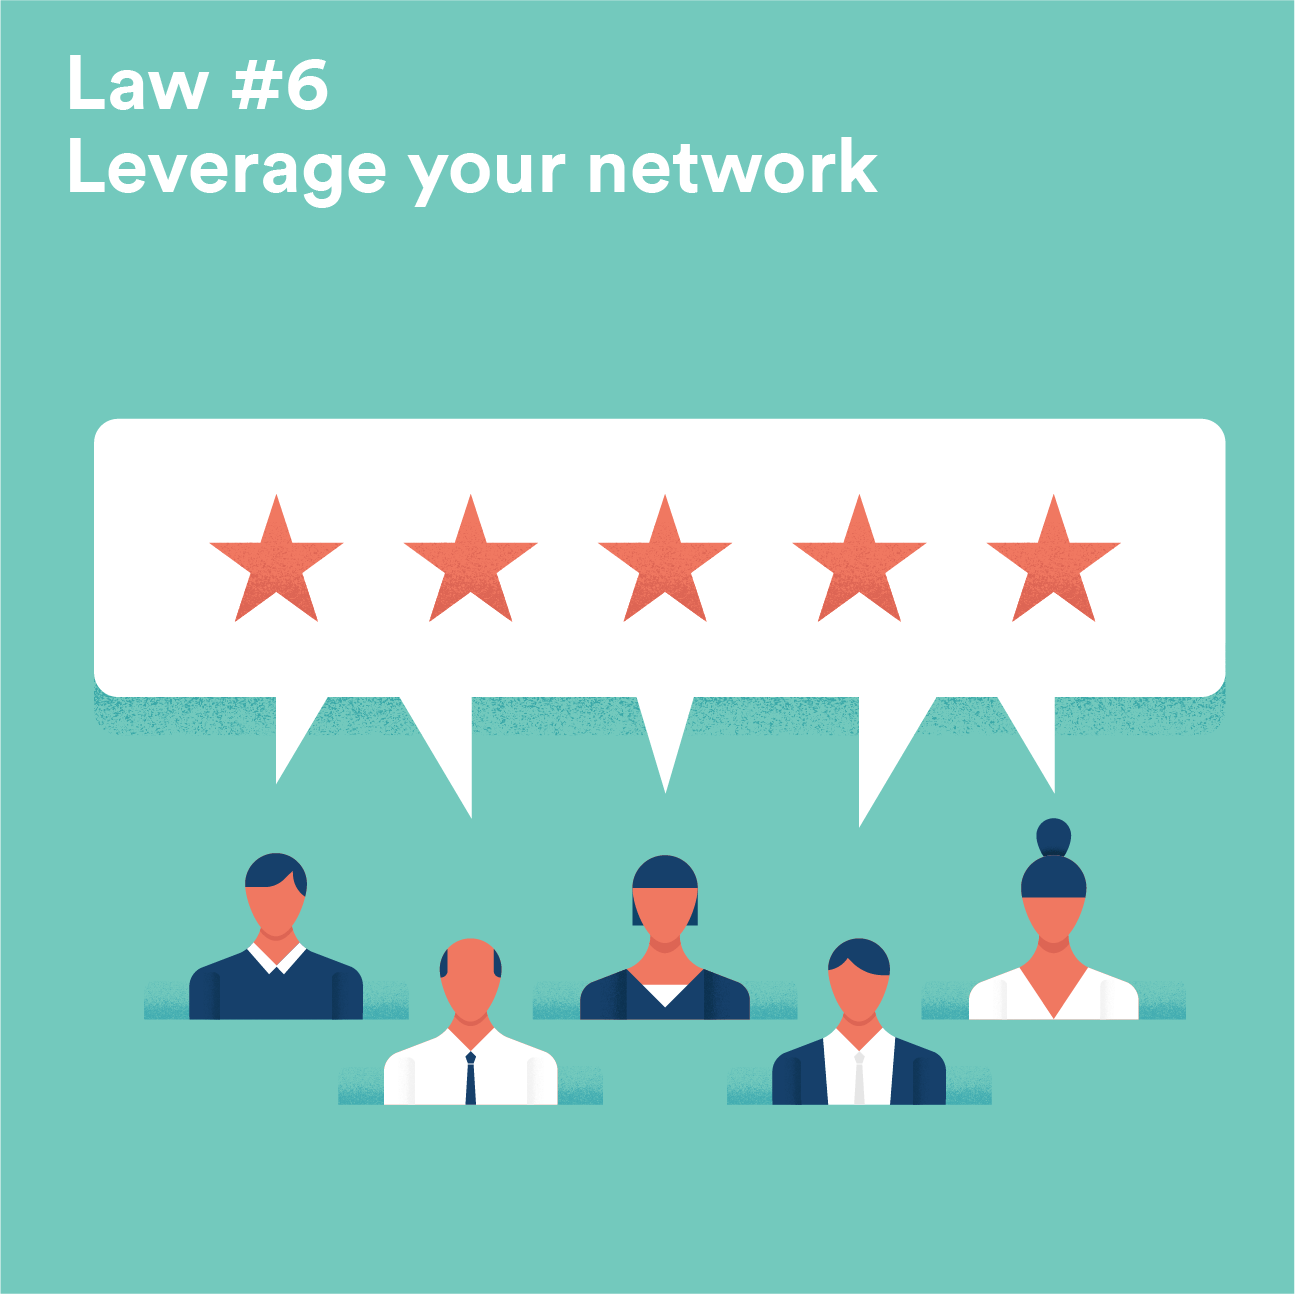 Law #6 - Leverage your network